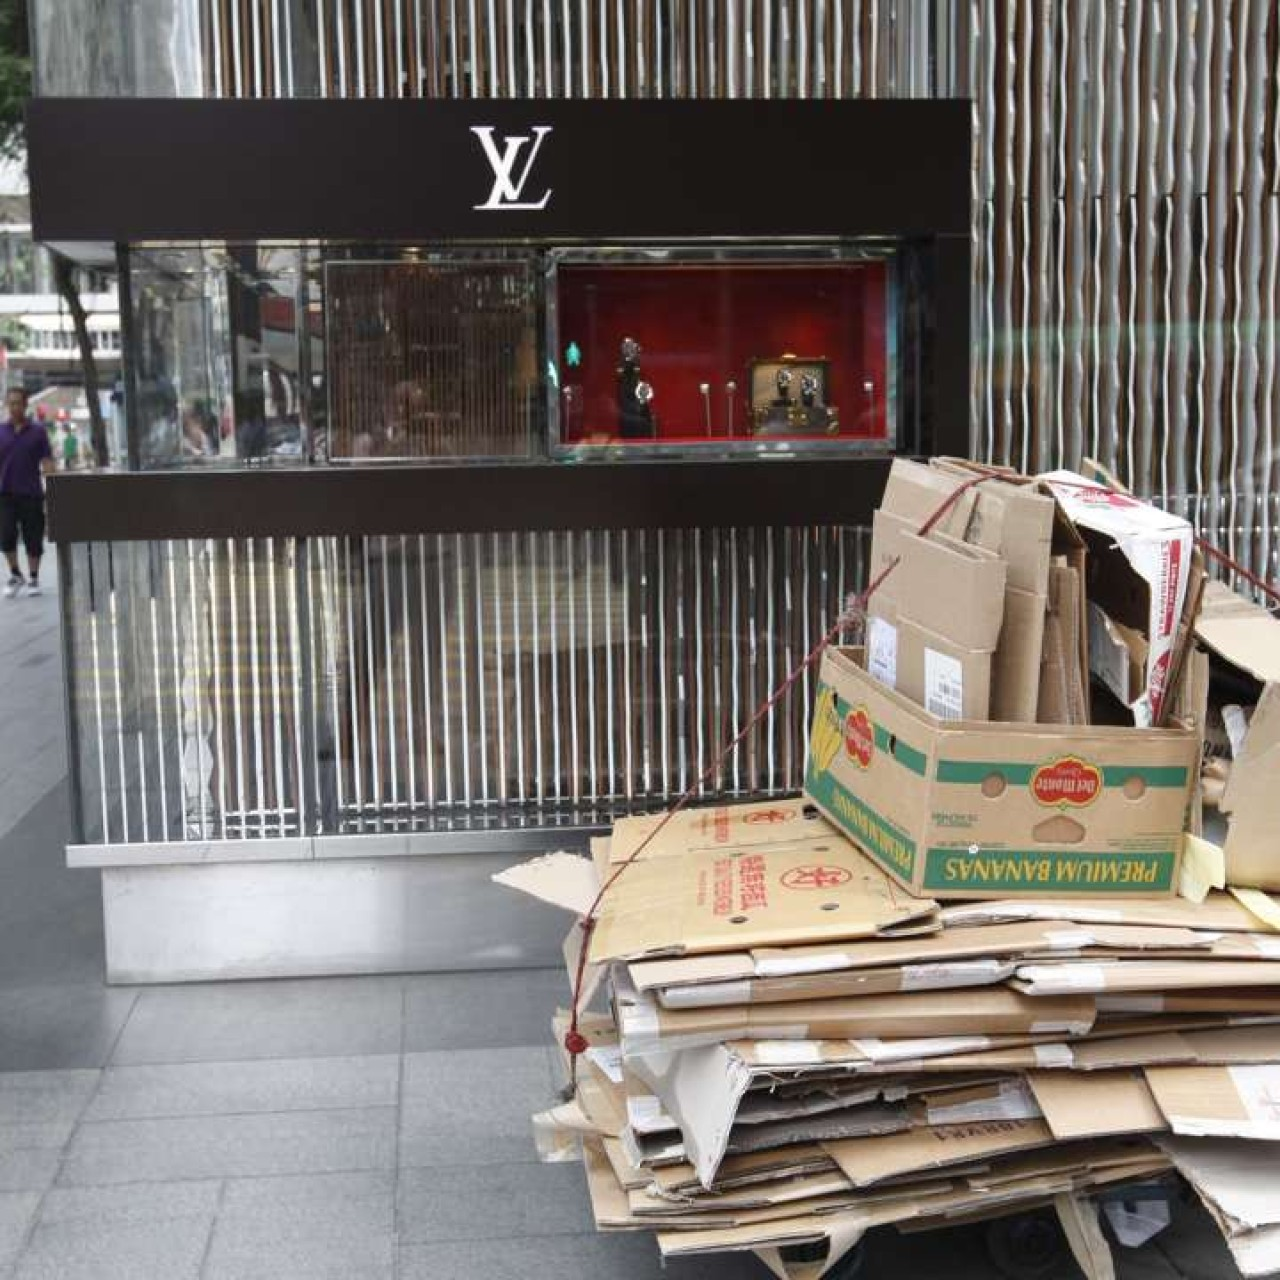 Hong Kong's appalling wealth gap is a burning fuse for revolution